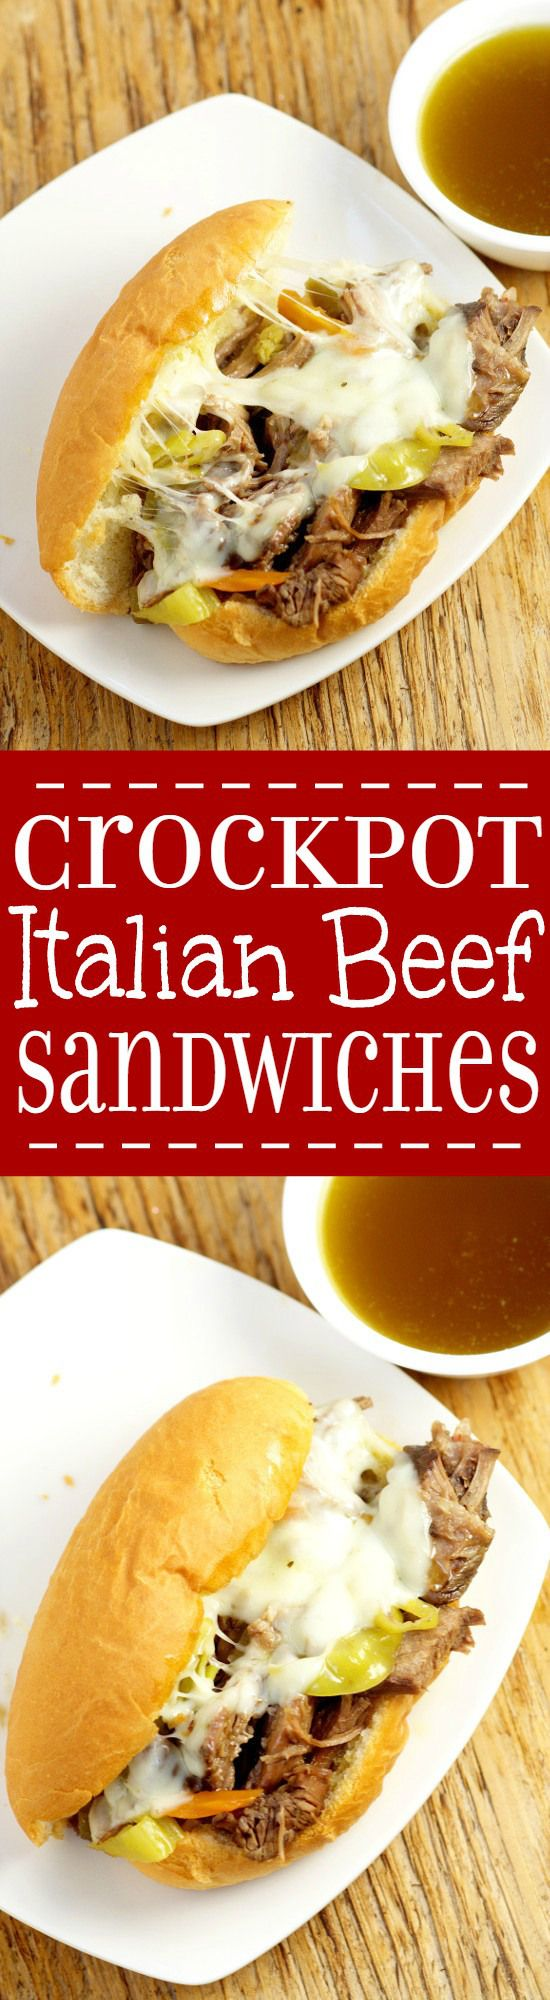 Just 5 ingredients to make your own classic, mouthwatering Crockpot Italian Beef Sandwiches recipe. Serve on French rolls with melted cheese for the full experience!  These are seriously amazing! Must try!